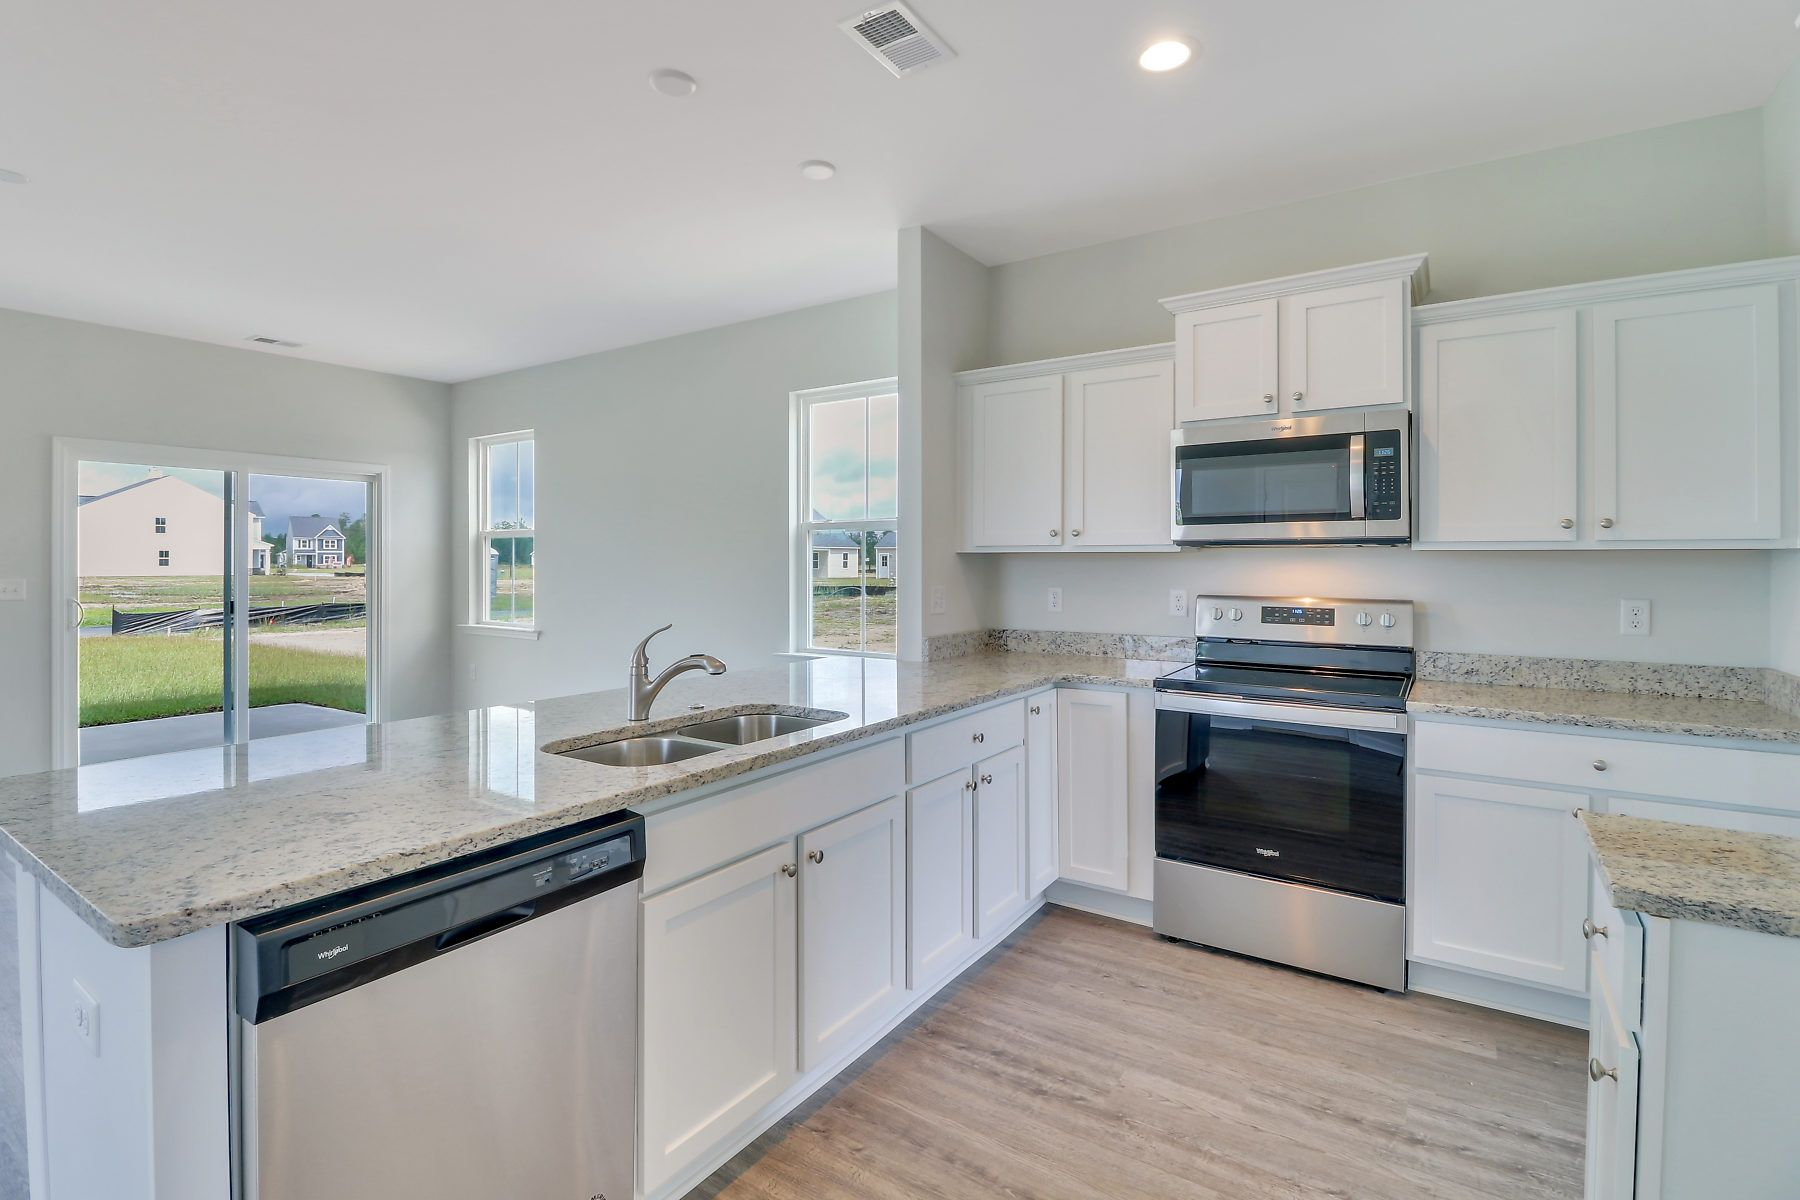 Kitchen featured in The Malind By Village Park Homes in Hilton Head, SC